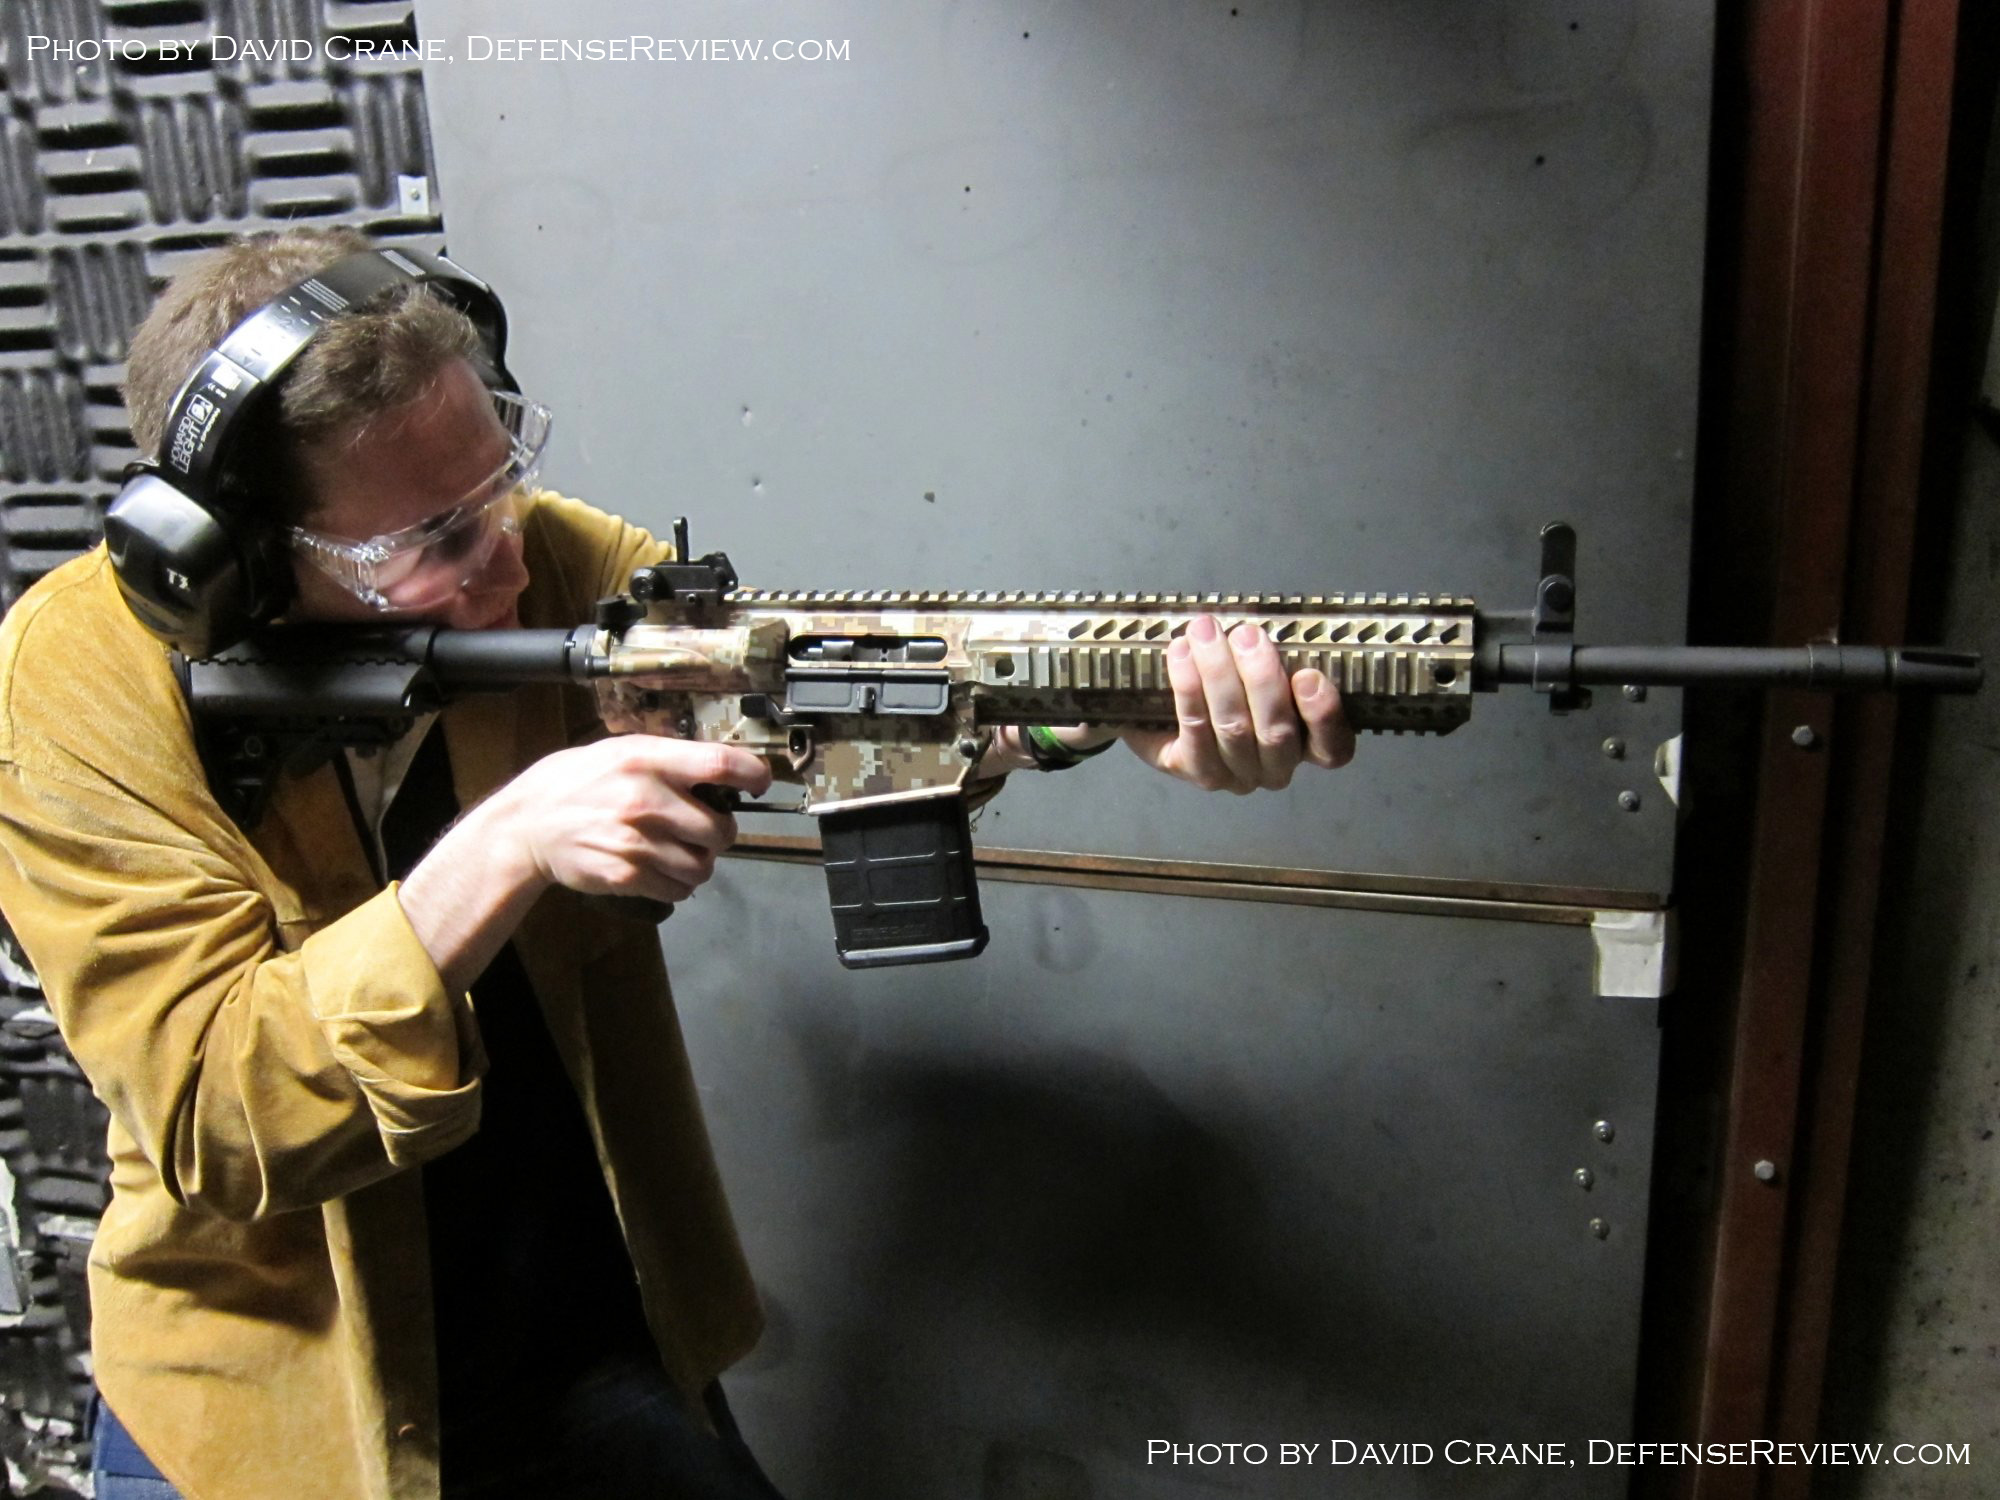 Colt_CM901_AR_Carbine_SBR_7.62mm_David_Crane_DefenseReview.com_3